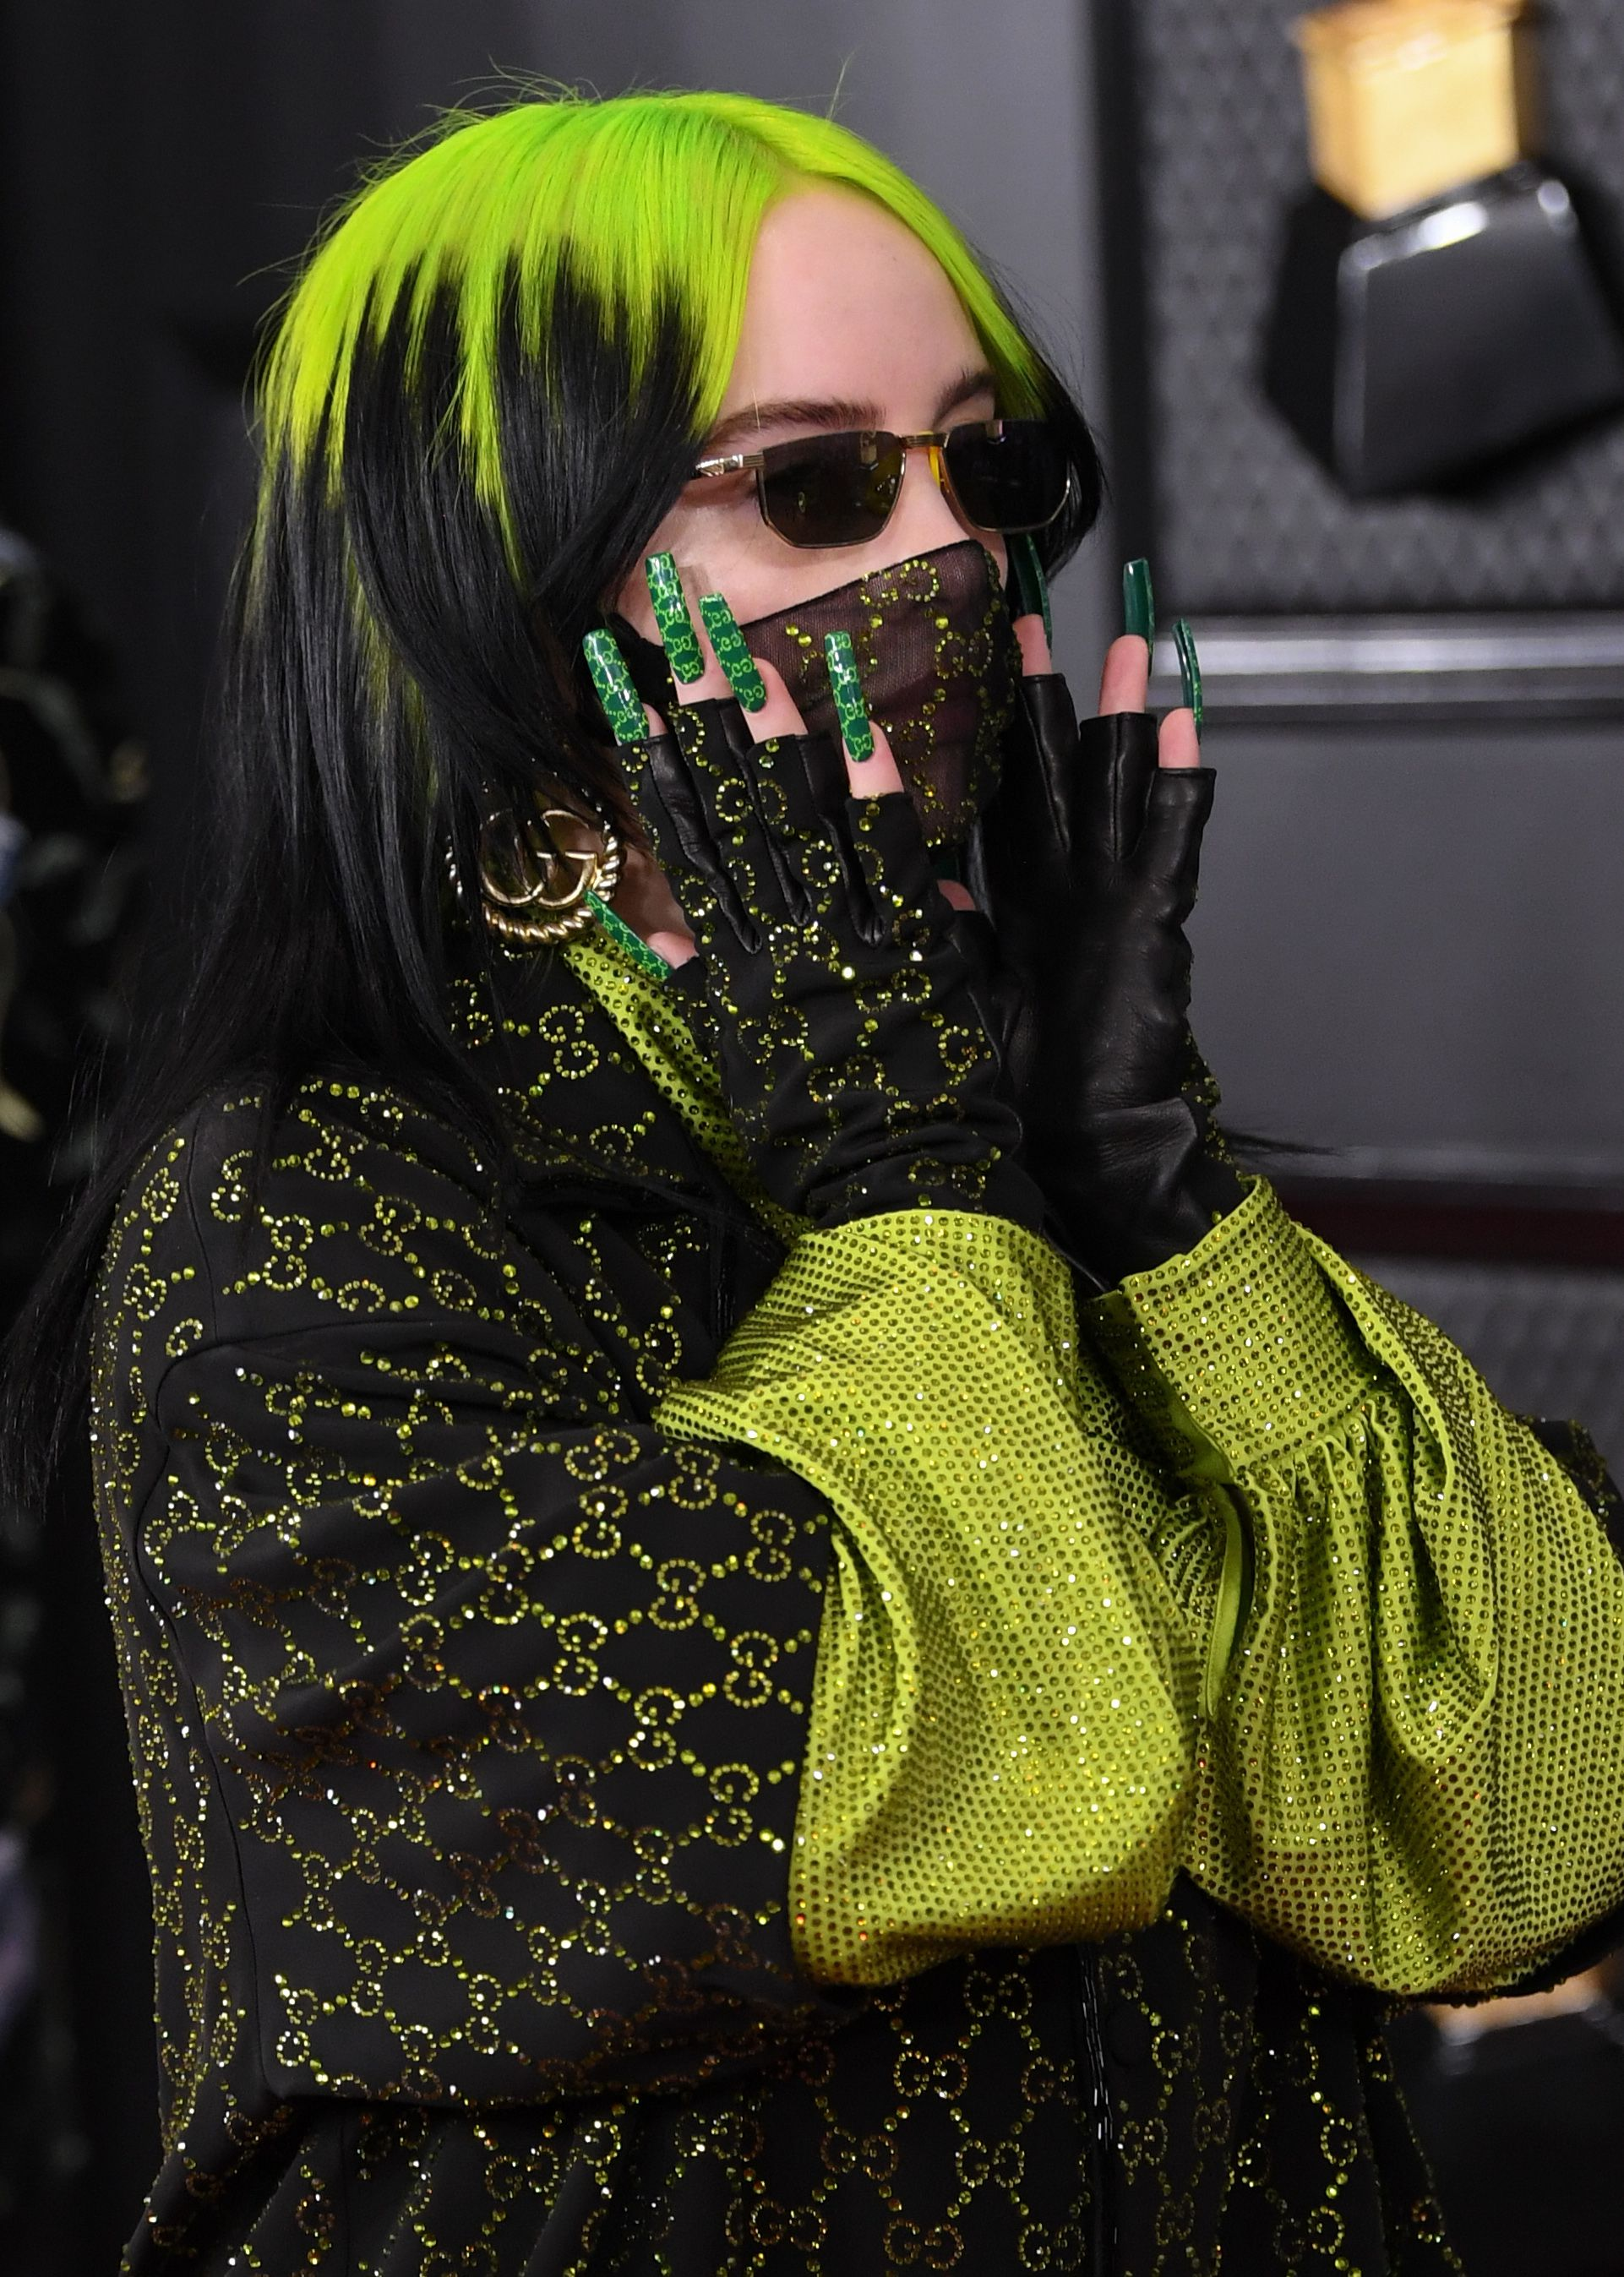 2020 Grammy Awards Fashion Details: Billie Eilish